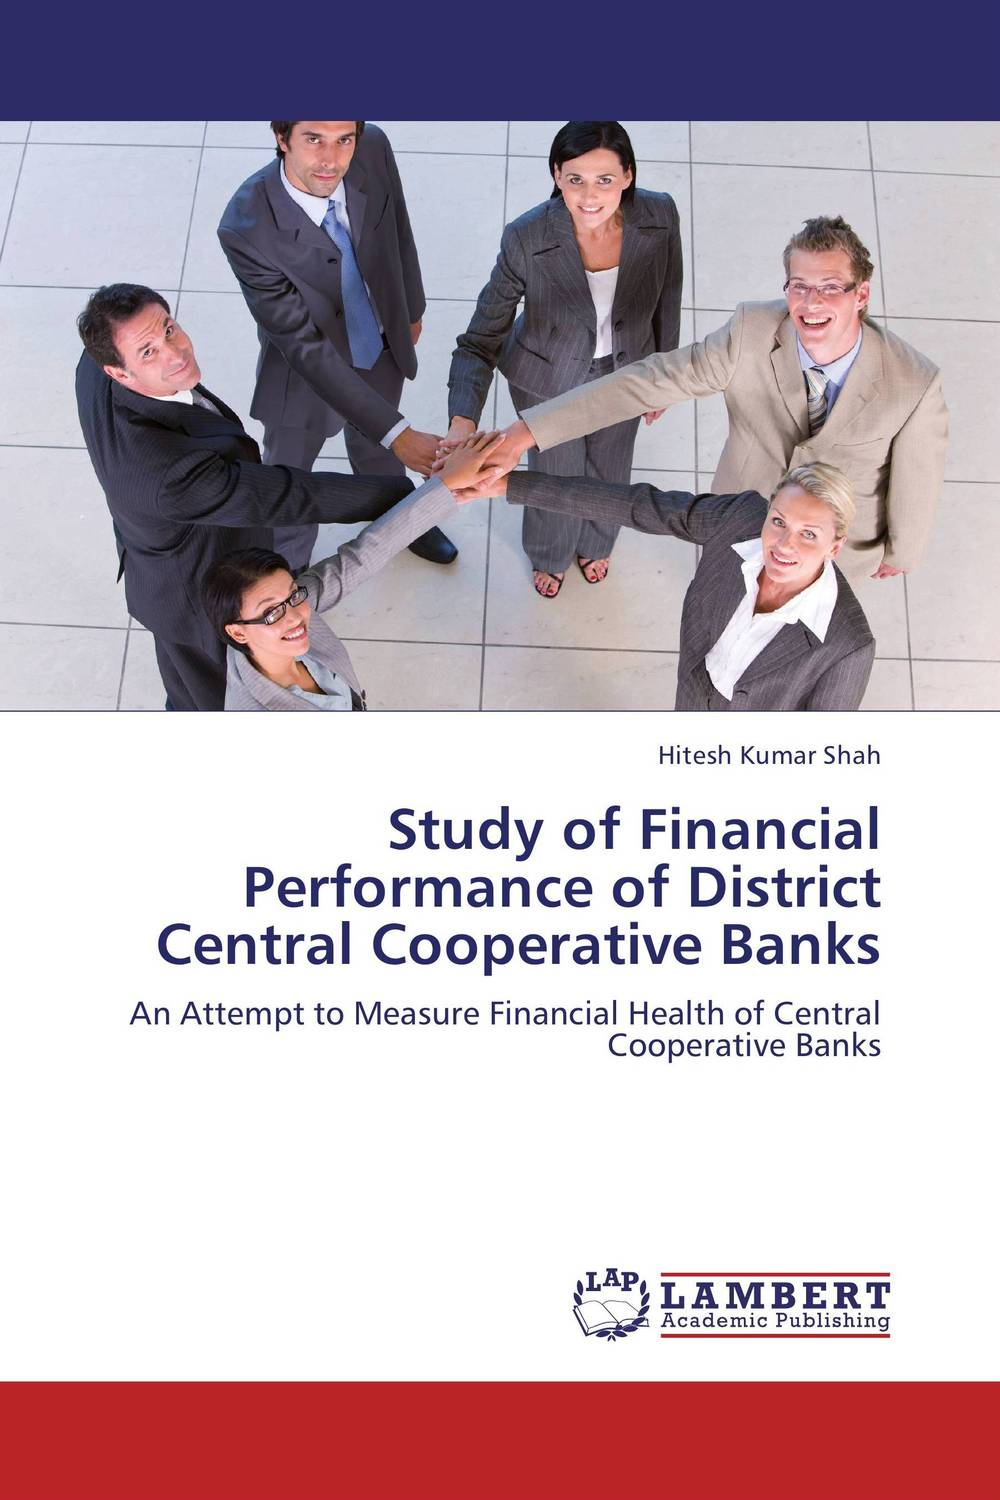 Study of Financial Performance of District Central Cooperative Banks